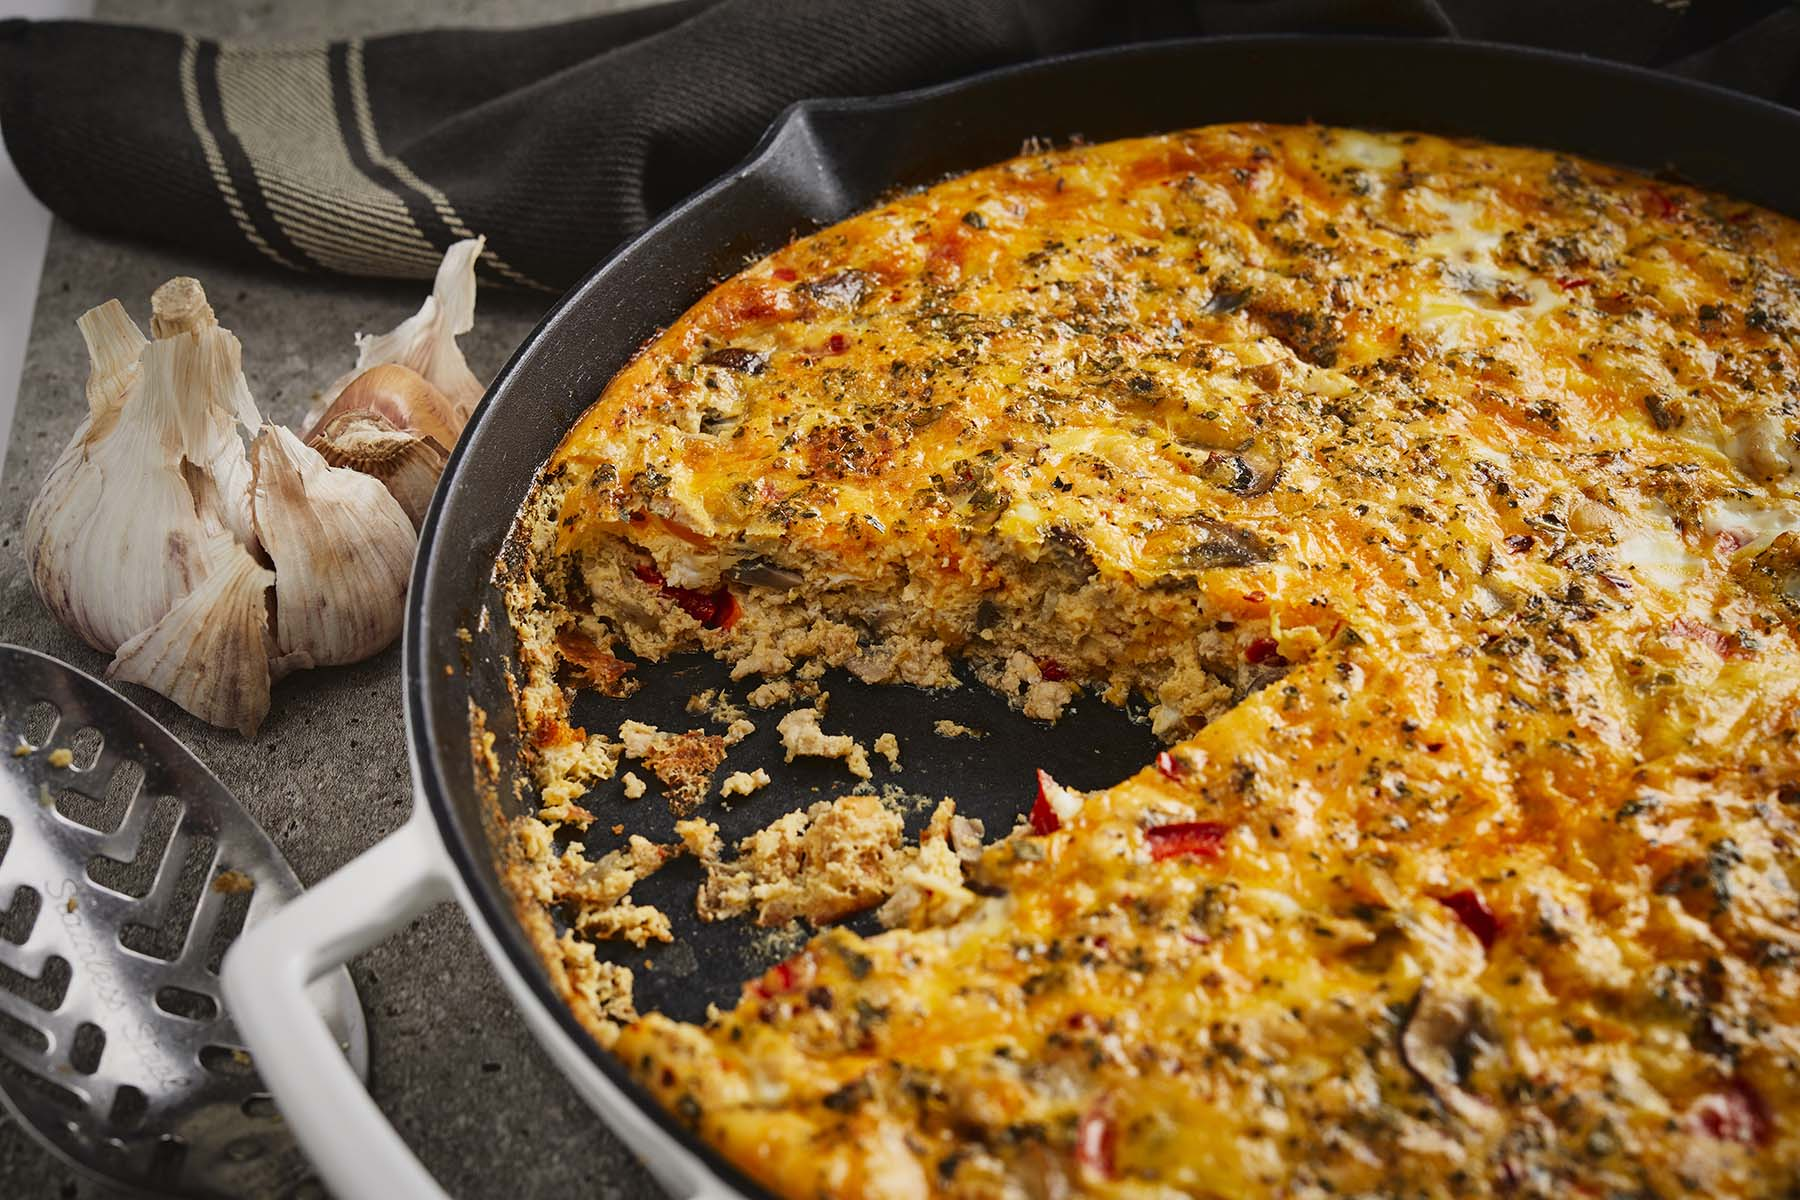 CHICKEN & VEGETABLE FRITTATA